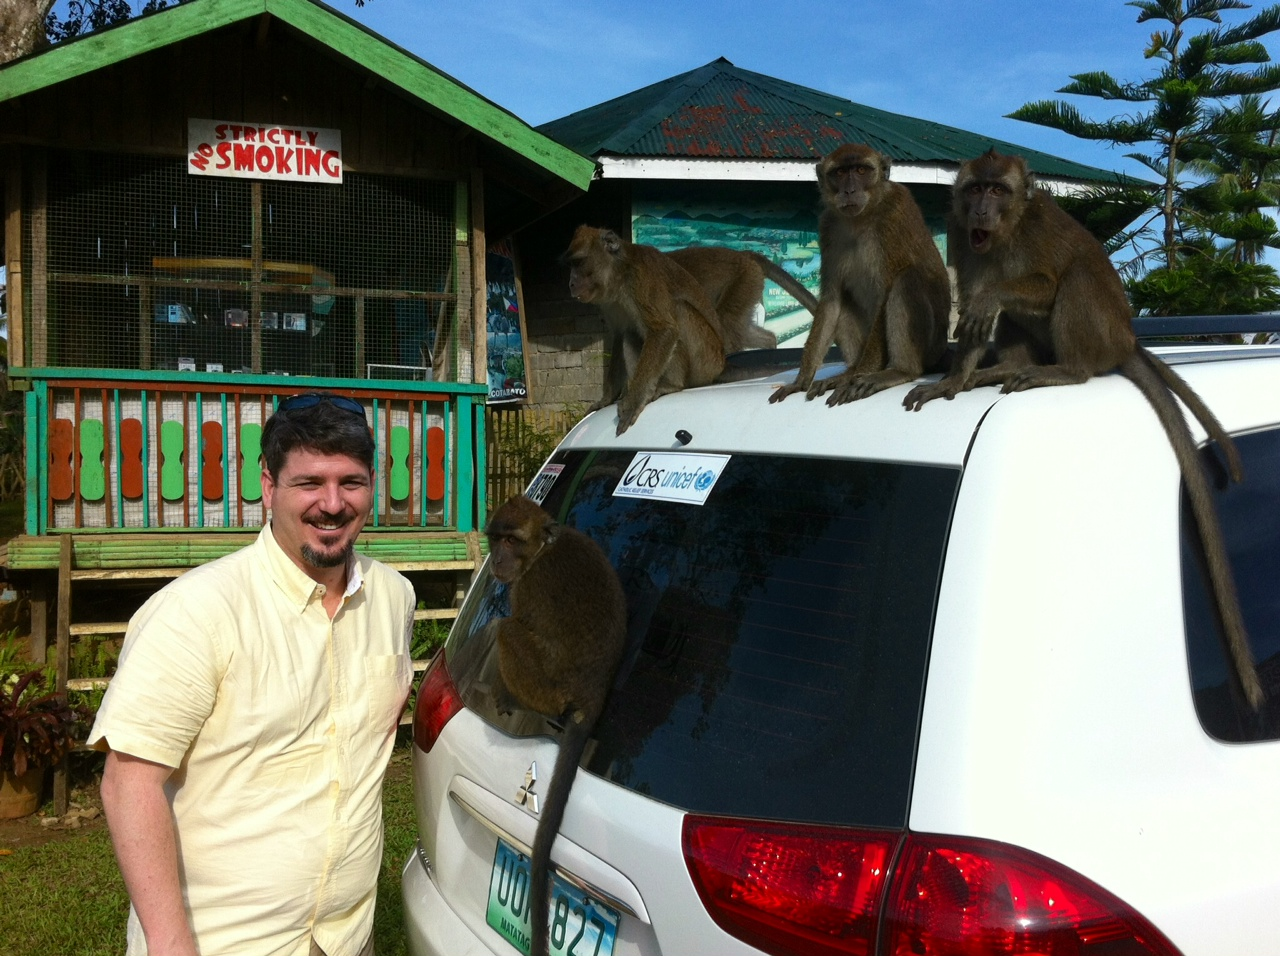 Mike Kinsella (MBA) poses beside the monkeys that have taken over the CRS vehicle.